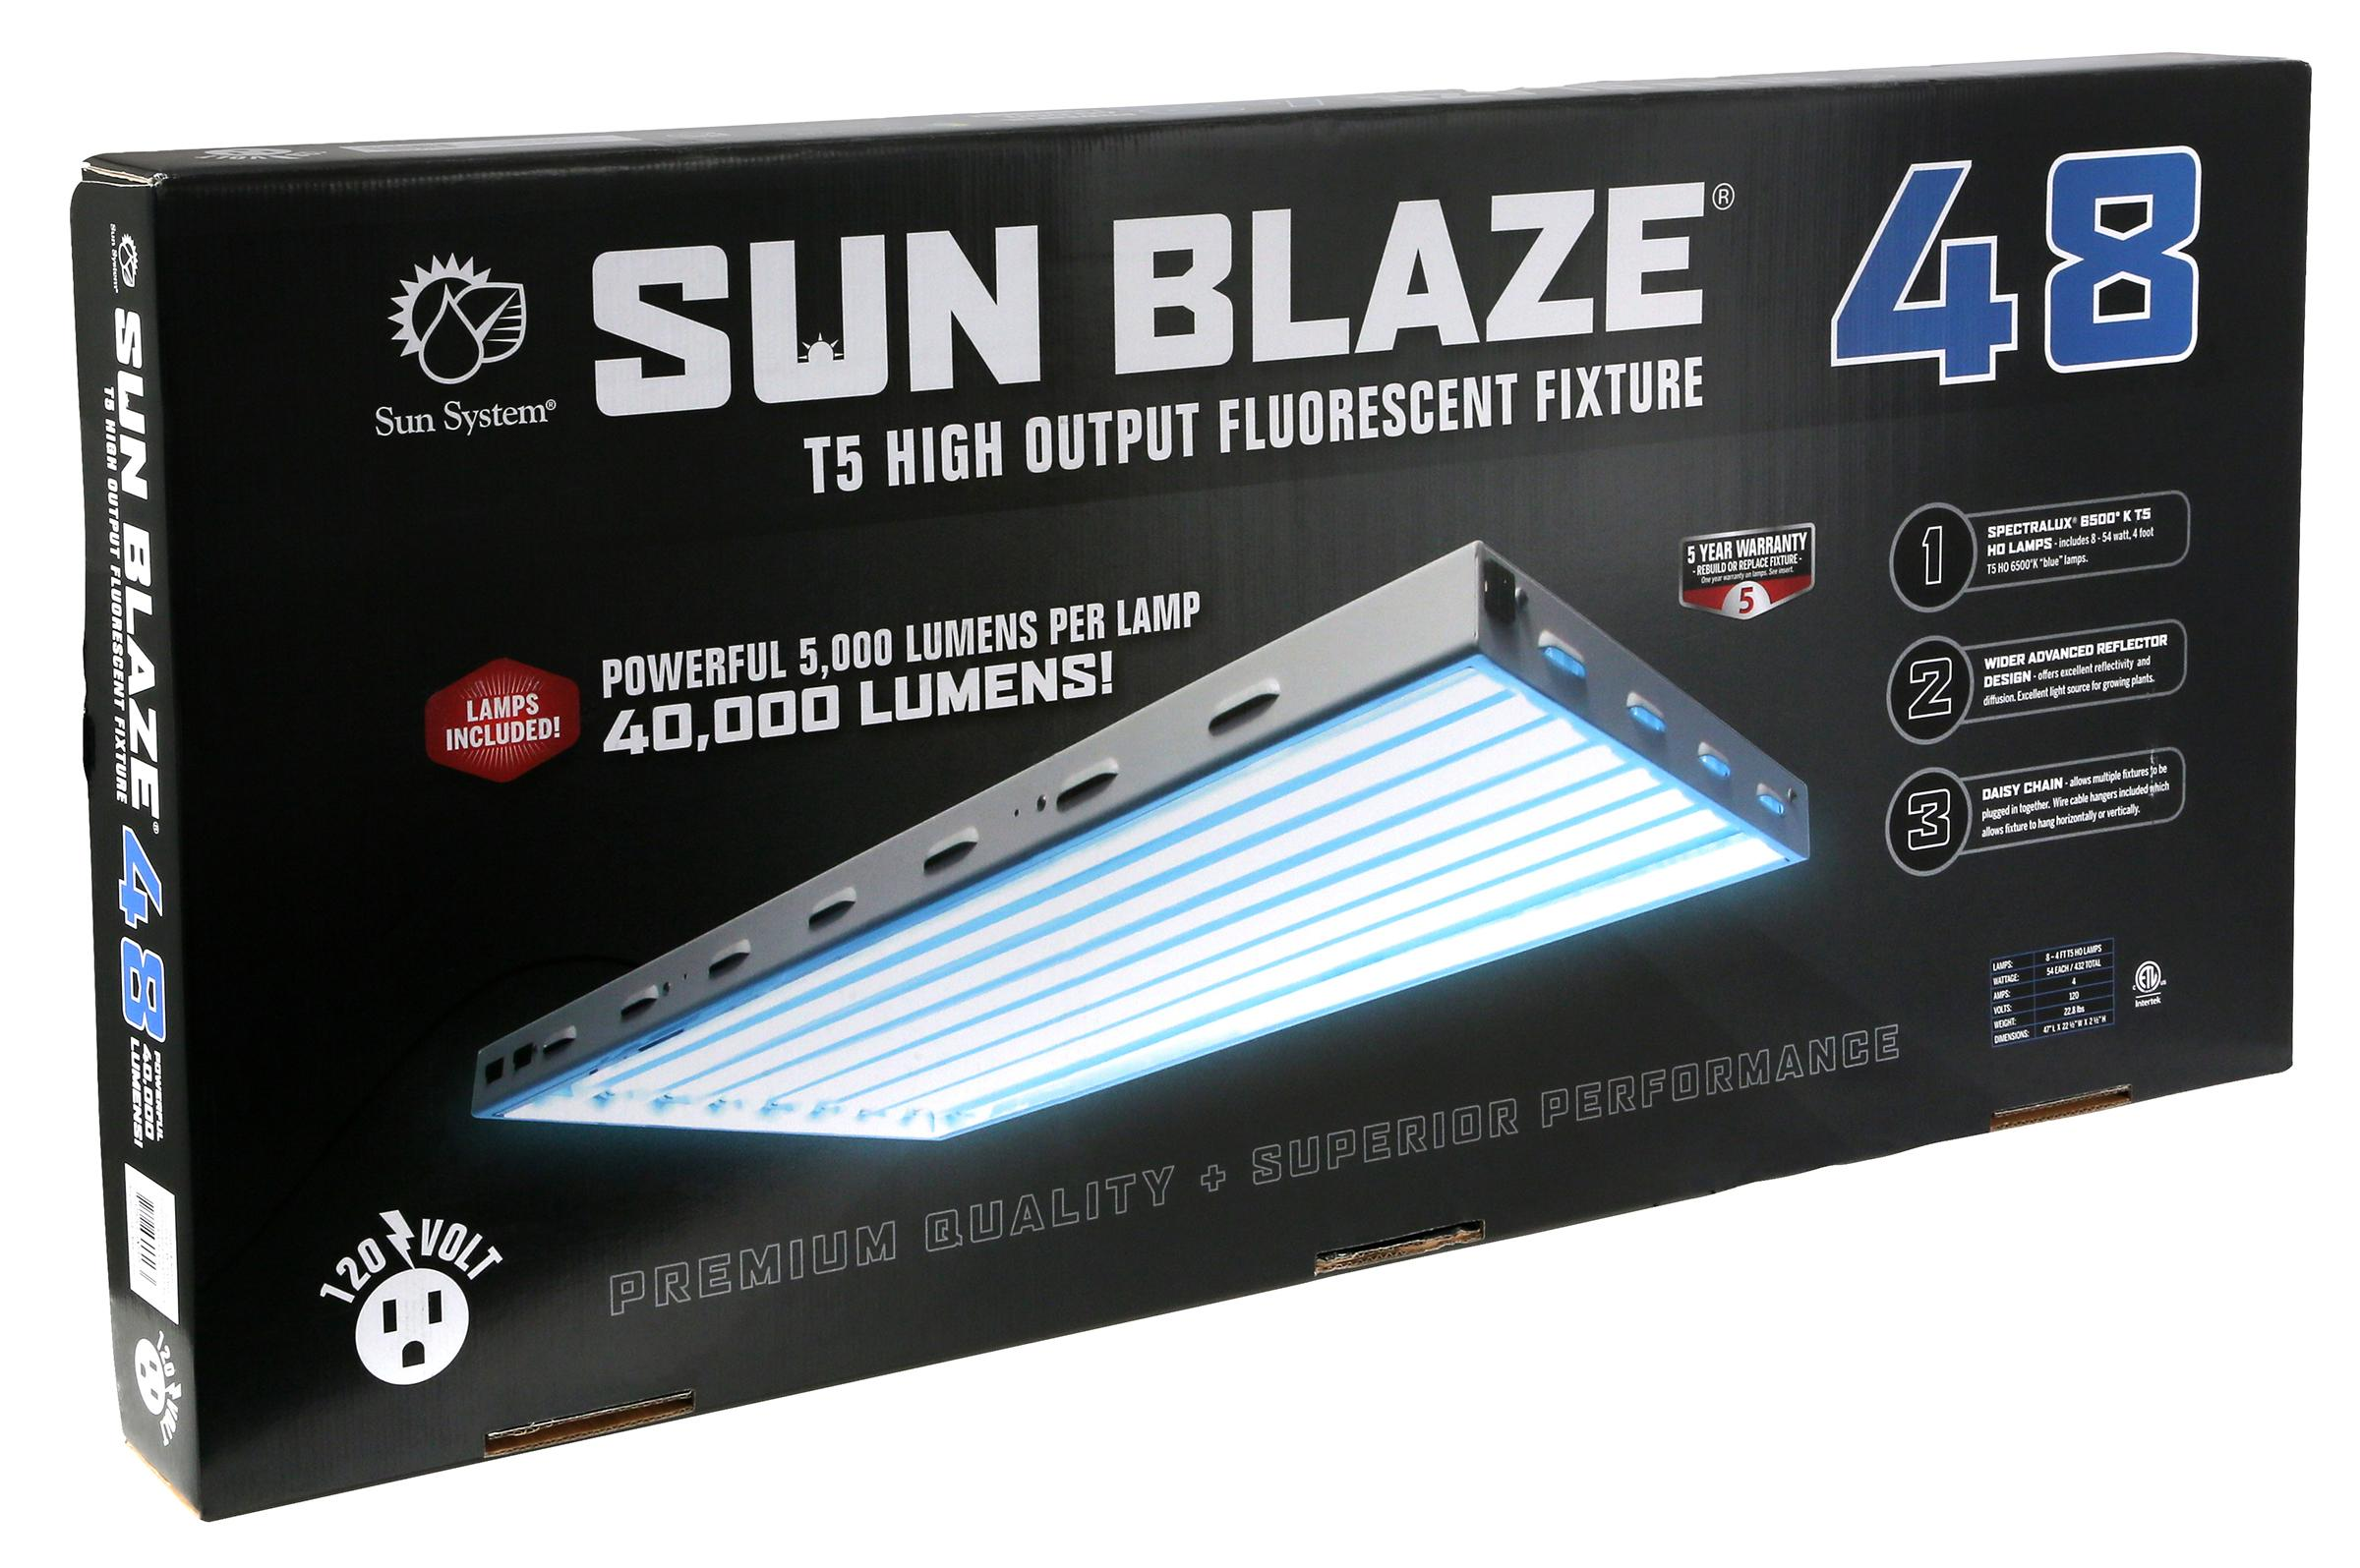 Sun Blaze 48 4 Foot 8 Lamp T5 Fluorescent System 120 Volt Wiring Light Fixtures In Series Multiple Image